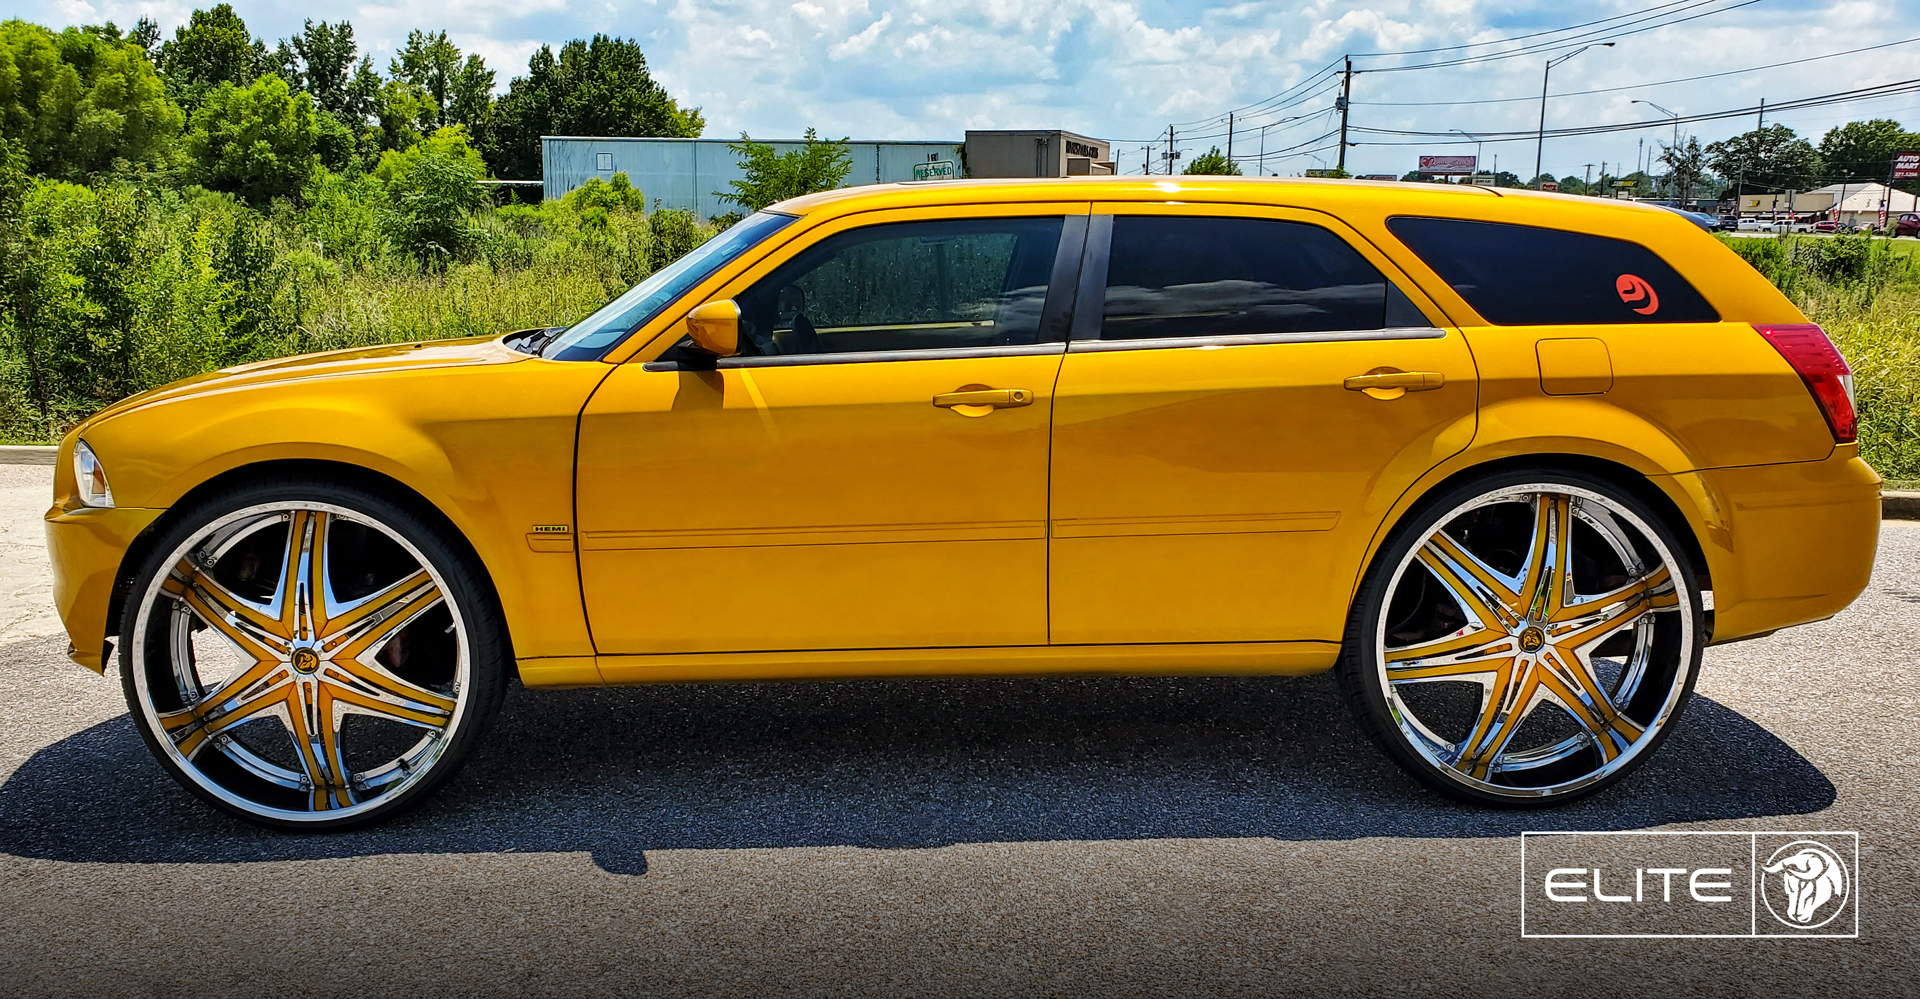 Elite Dodge Magnum Yellow